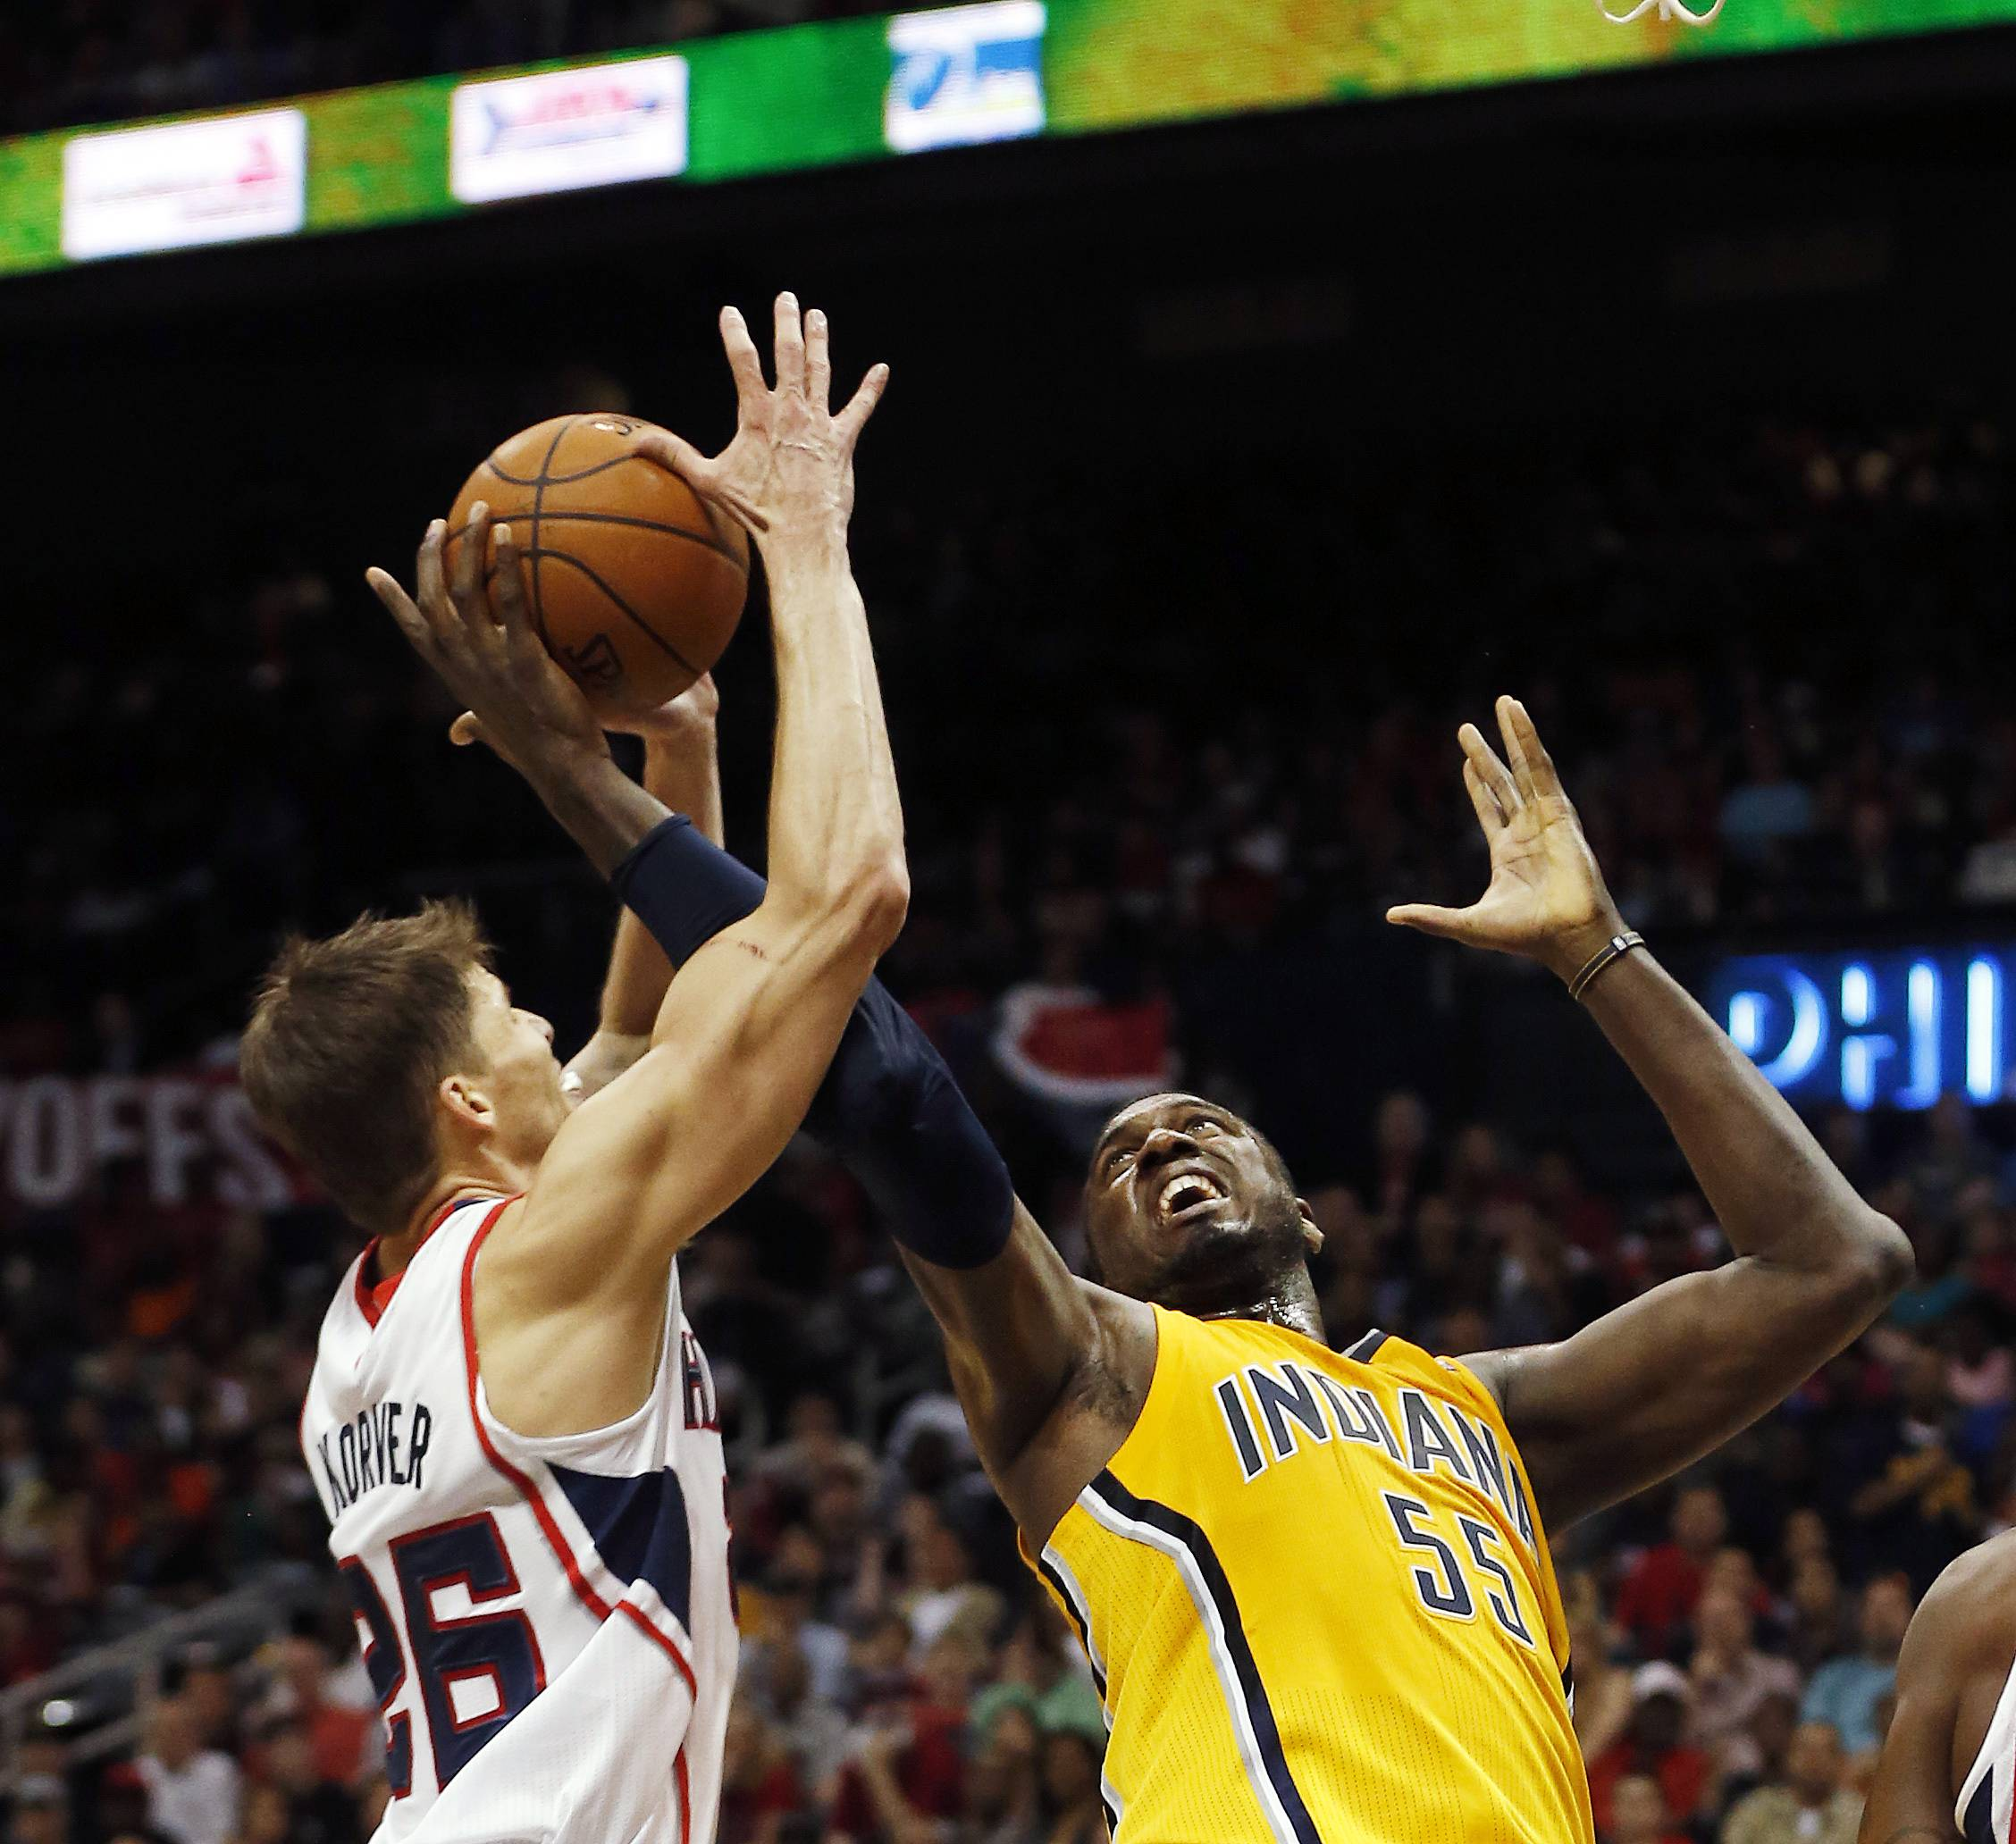 Atlanta Hawks guard Kyle Korver, left, and Indiana Pacers center Roy Hibbert (55) battle for the rebound in the first half of Game 4 of an NBA basketball first-round playoff series, Saturday, April 26, 2014, in Atlanta.